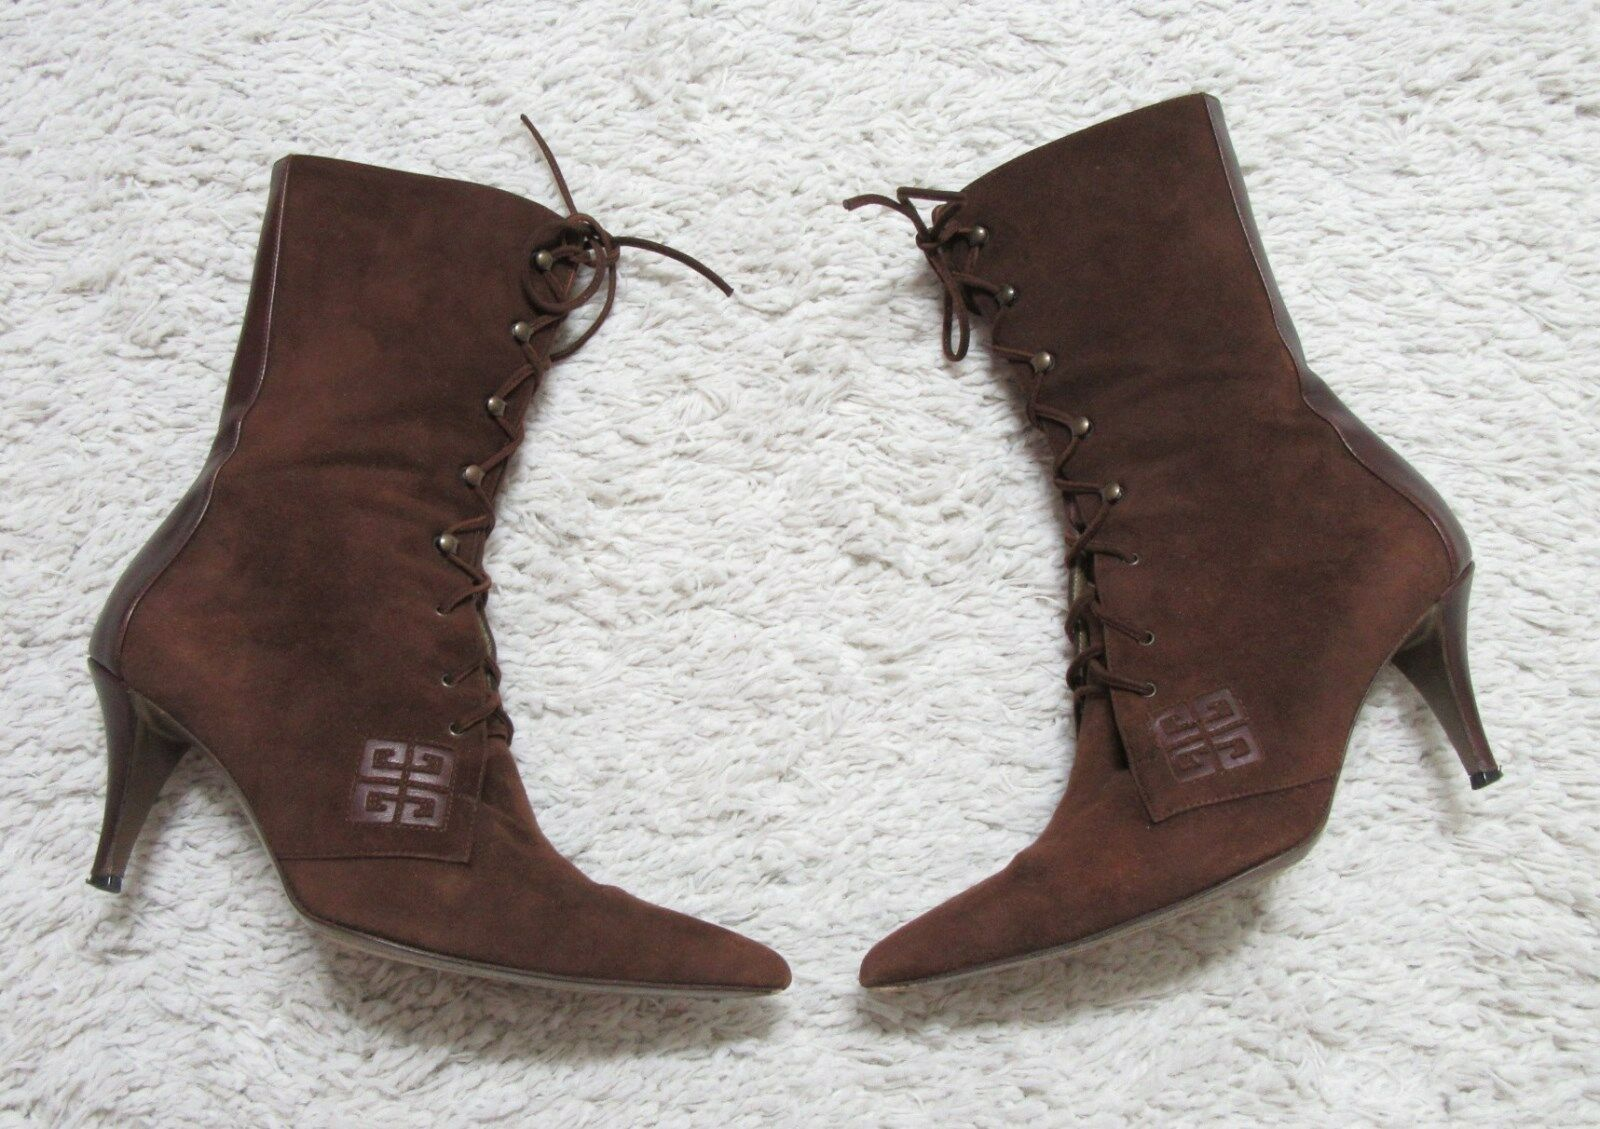 GIVENCHY BROWN SUEDE + LEATHER LACE-UP BOOTS 38.5